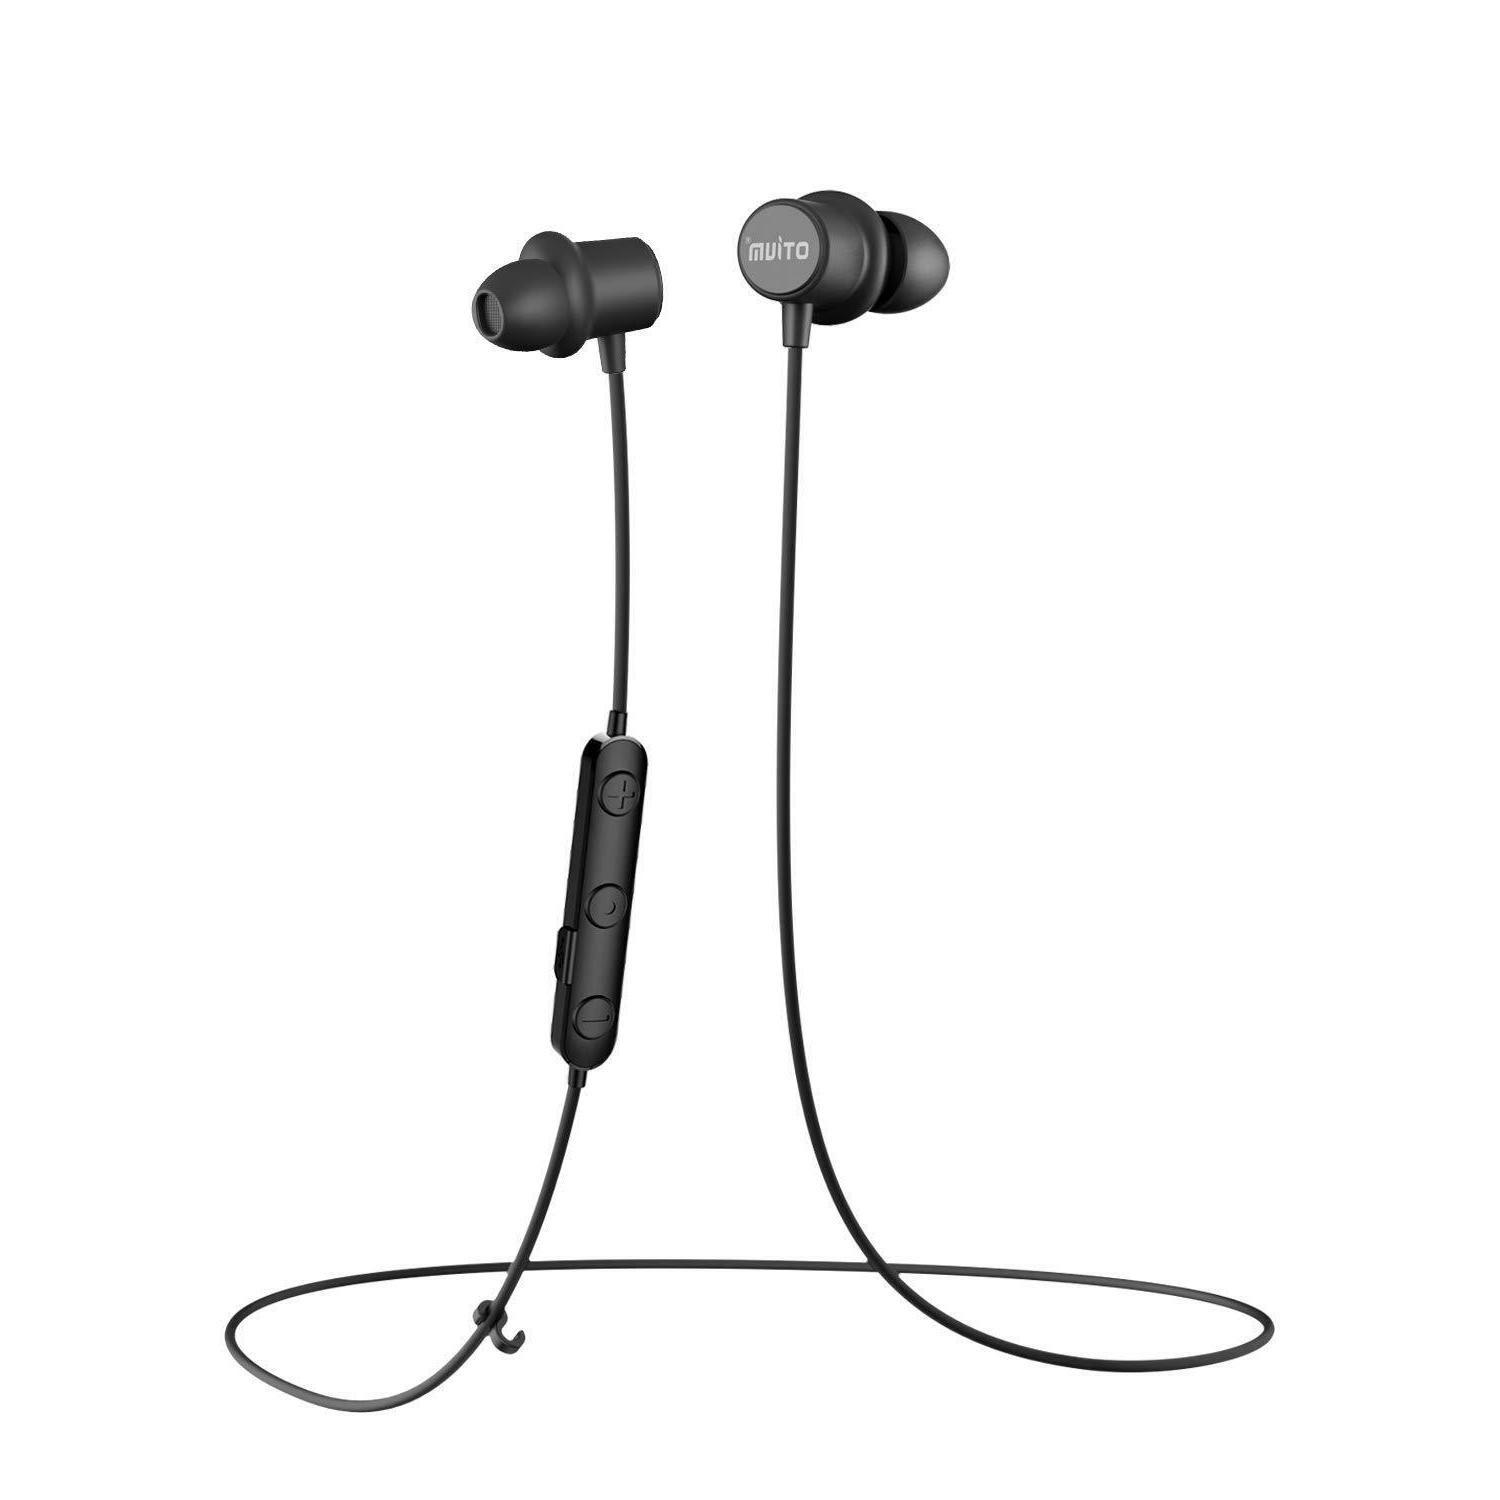 m10 magnetic wireless bluetooth noise cancelling earbuds